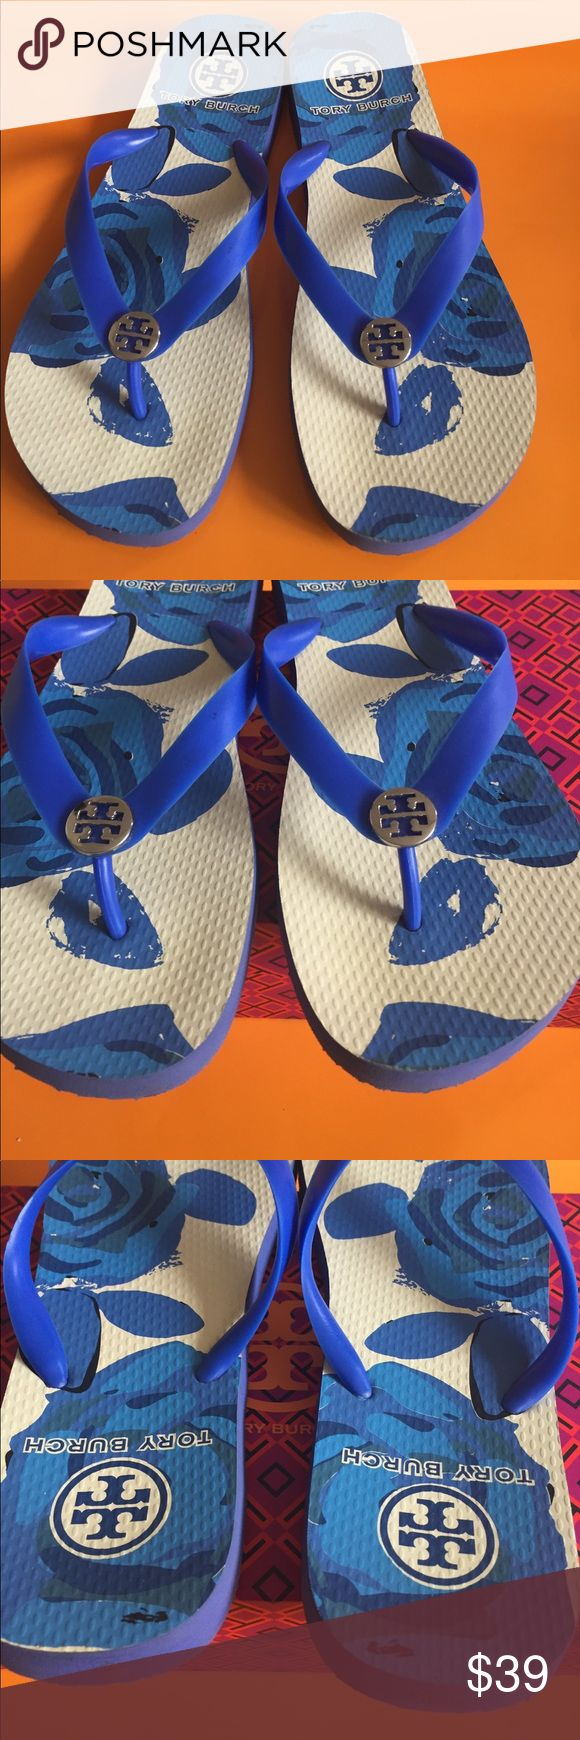 Tory Burch Flip Flops! Beautiful blue and white floral designed flip flops with silver TB logo. Gently used. No box. Tory Burch Shoes Slippers